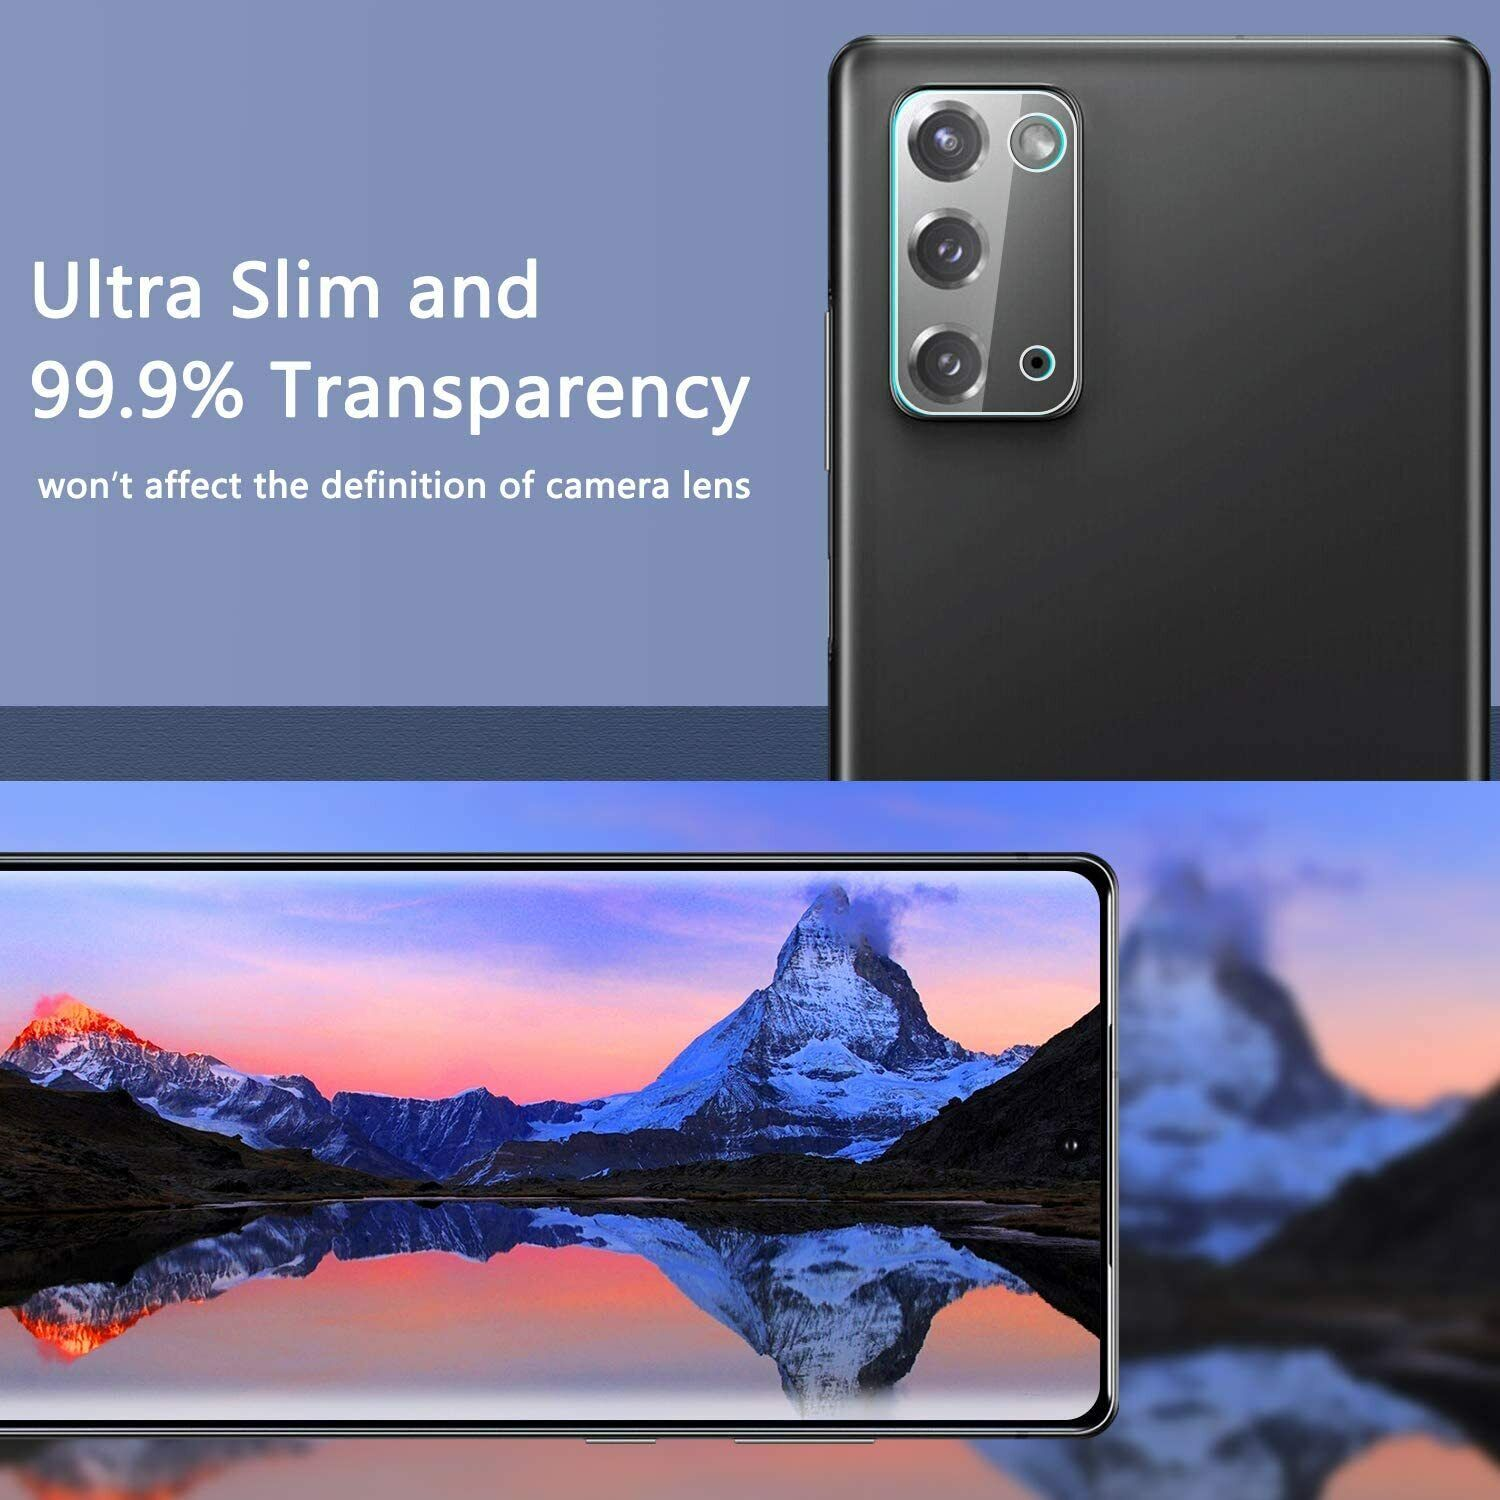 Tempered Glass Rear Camera Lens Protector For Samsung Galaxy Note 20 Ultra 5G - $3.95